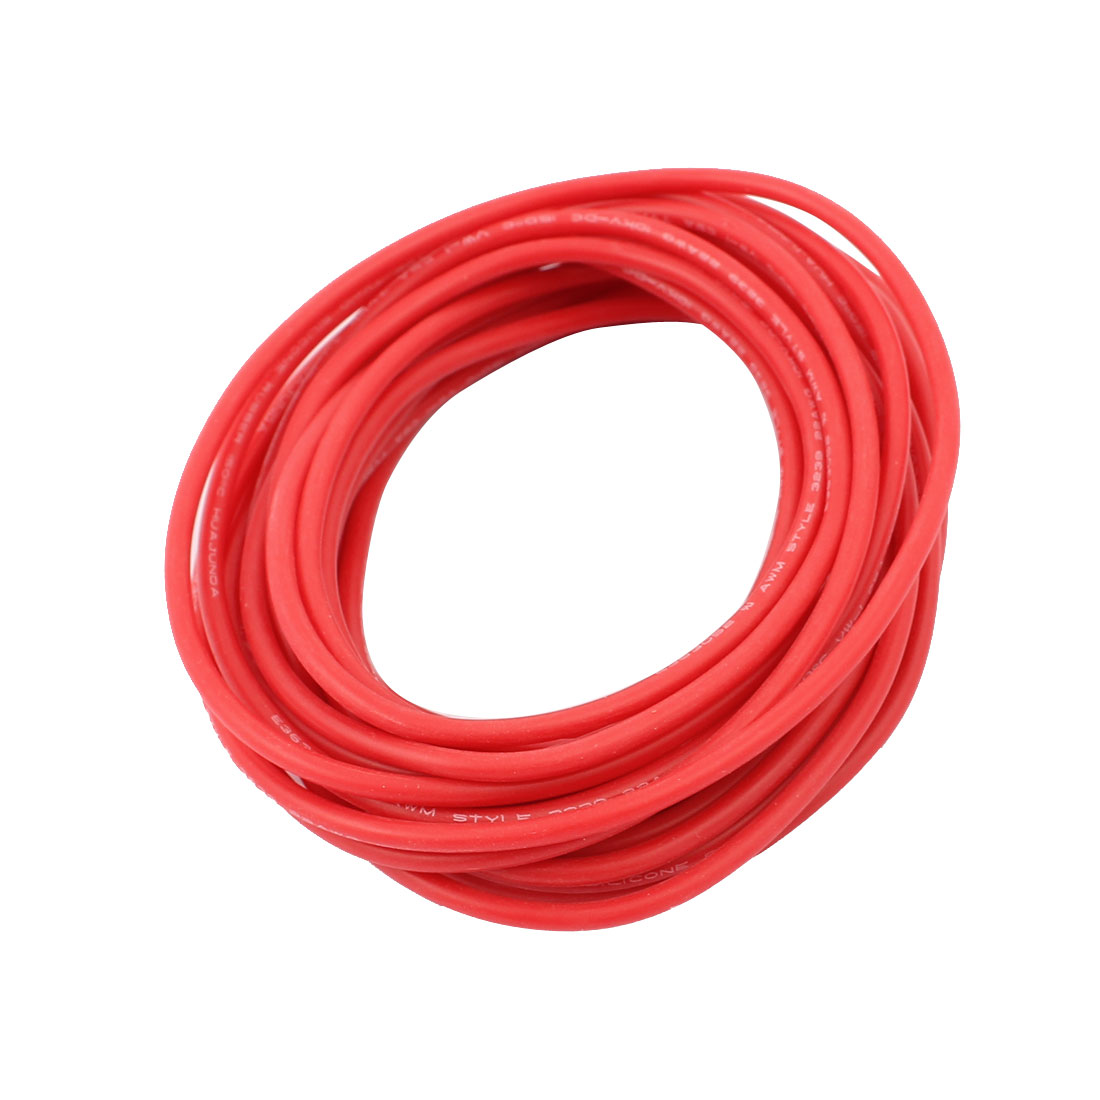 5M 22AWG 10KV Electric Copper Core Flexible Silicone Wire Cable Red ...